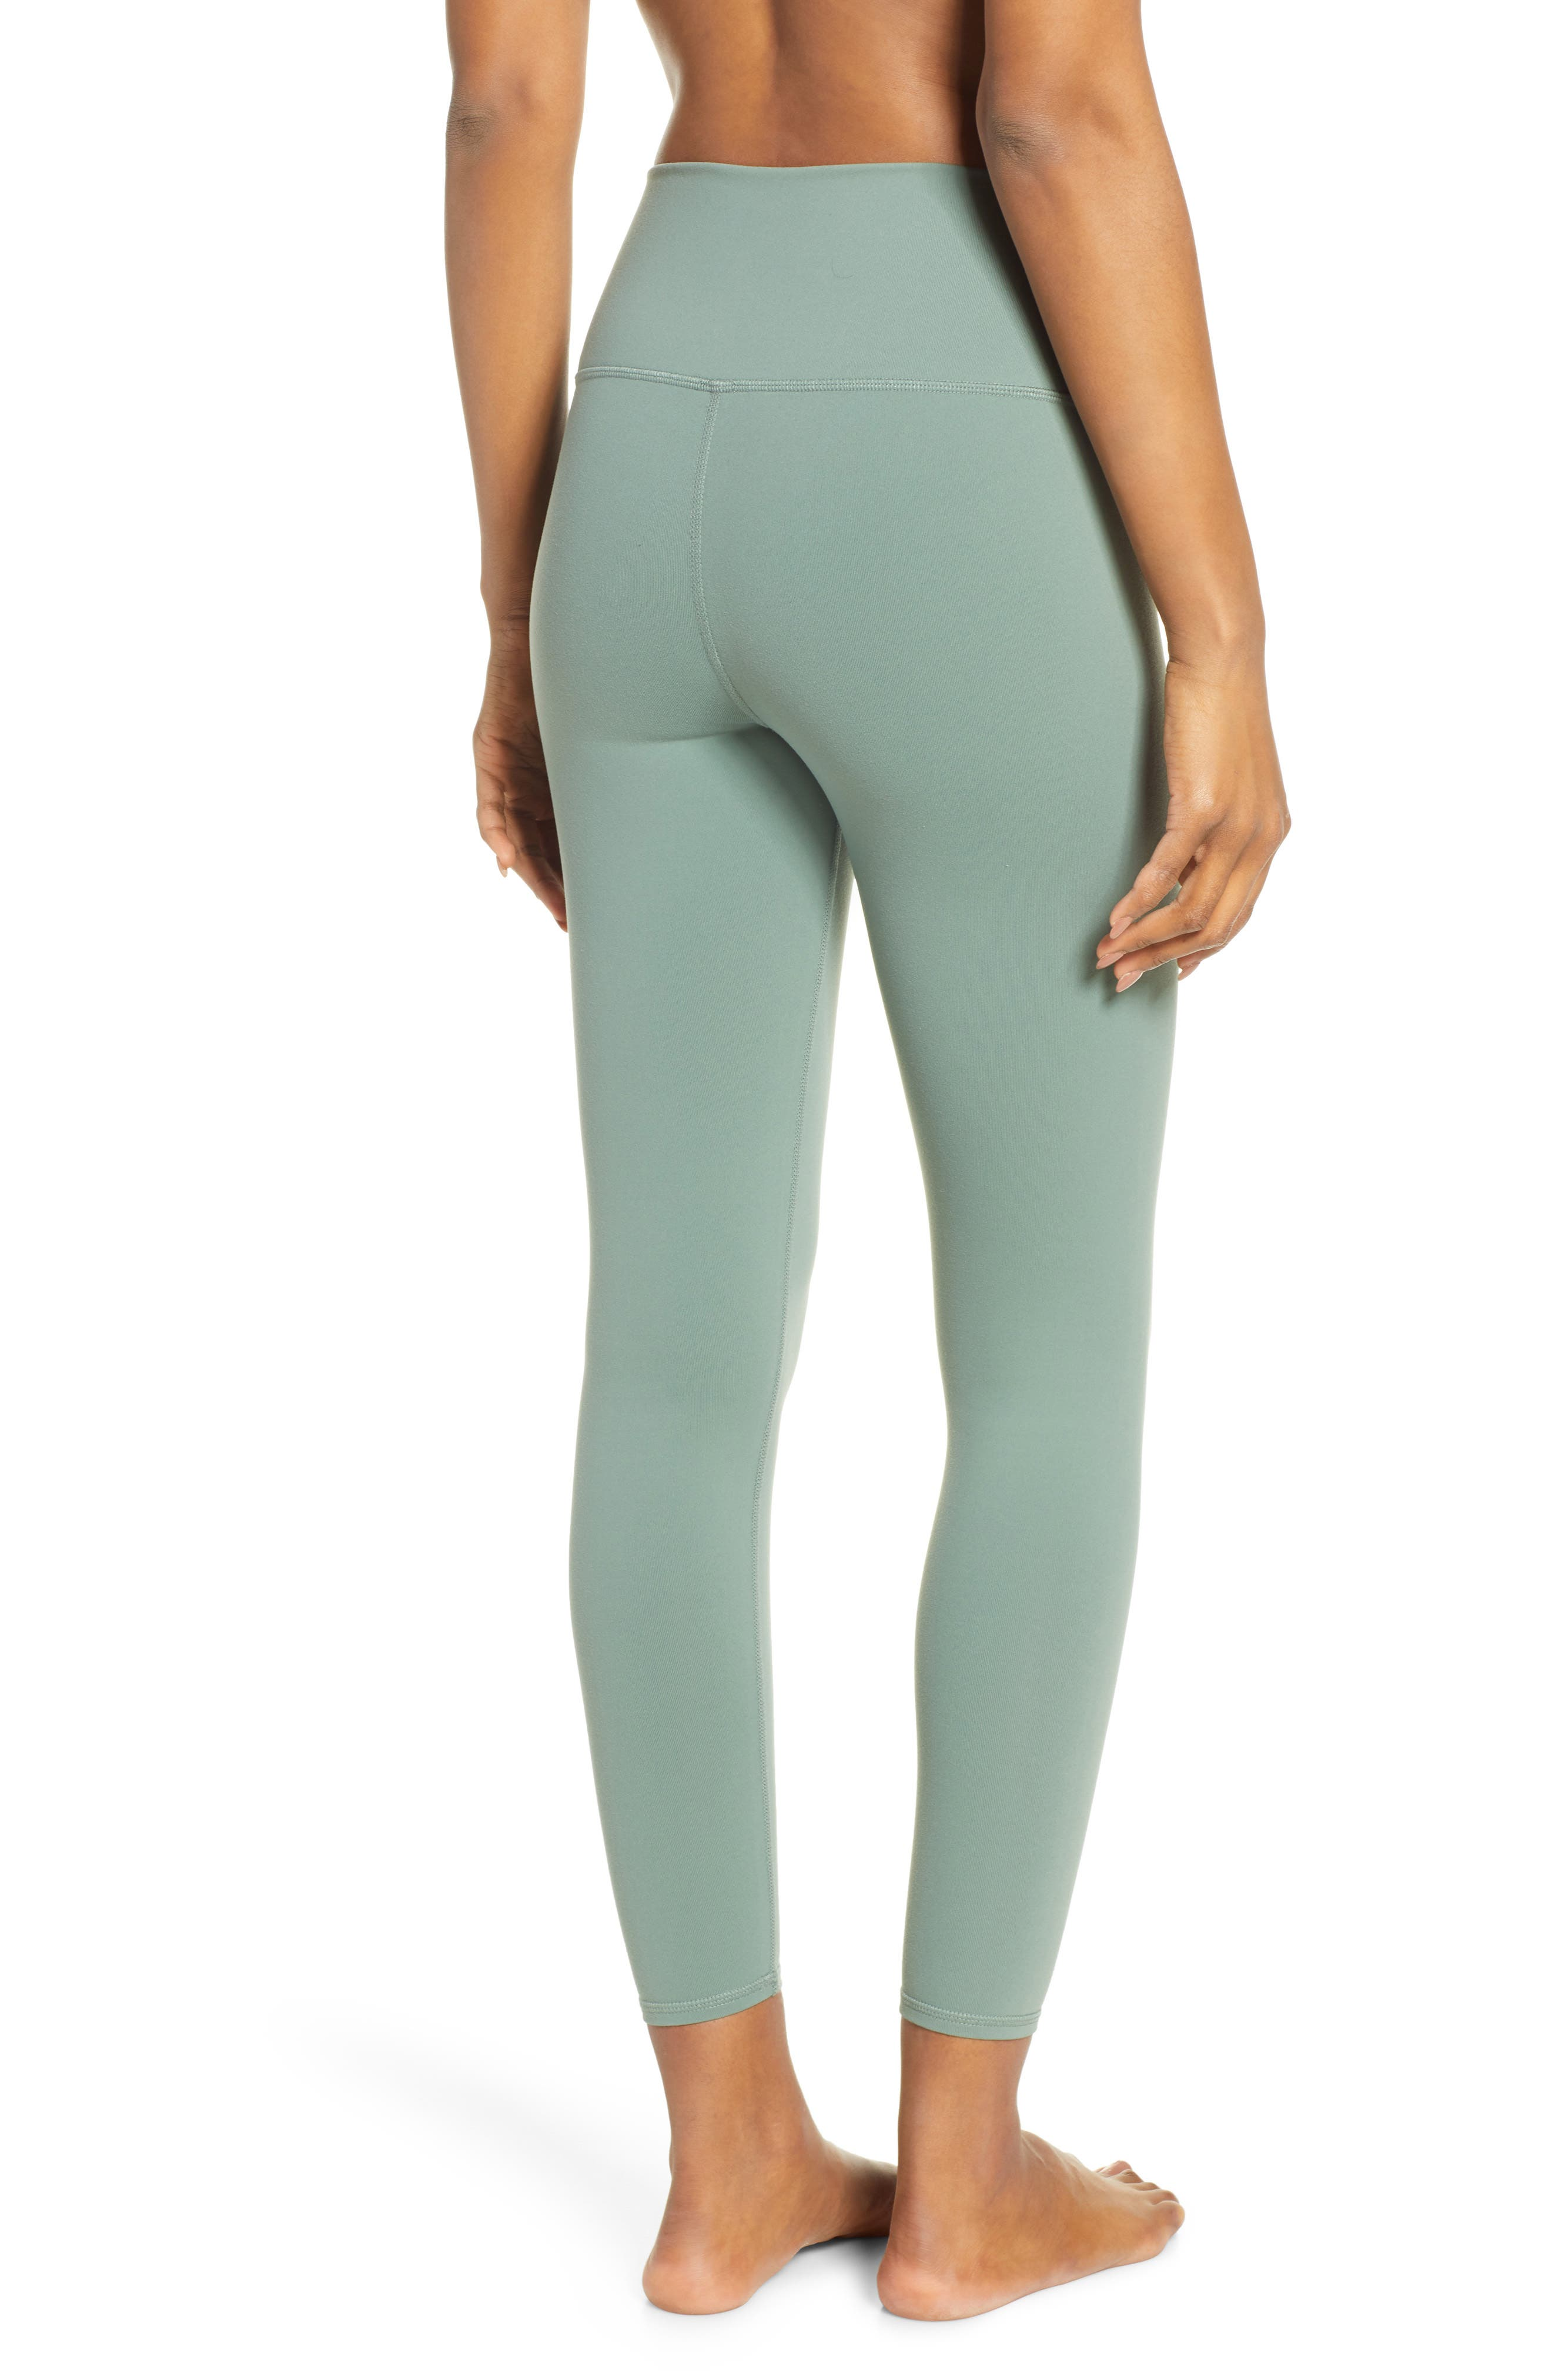 ALO, Airbrush 7/8 High Waist Leggings, Alternate thumbnail 2, color, 363